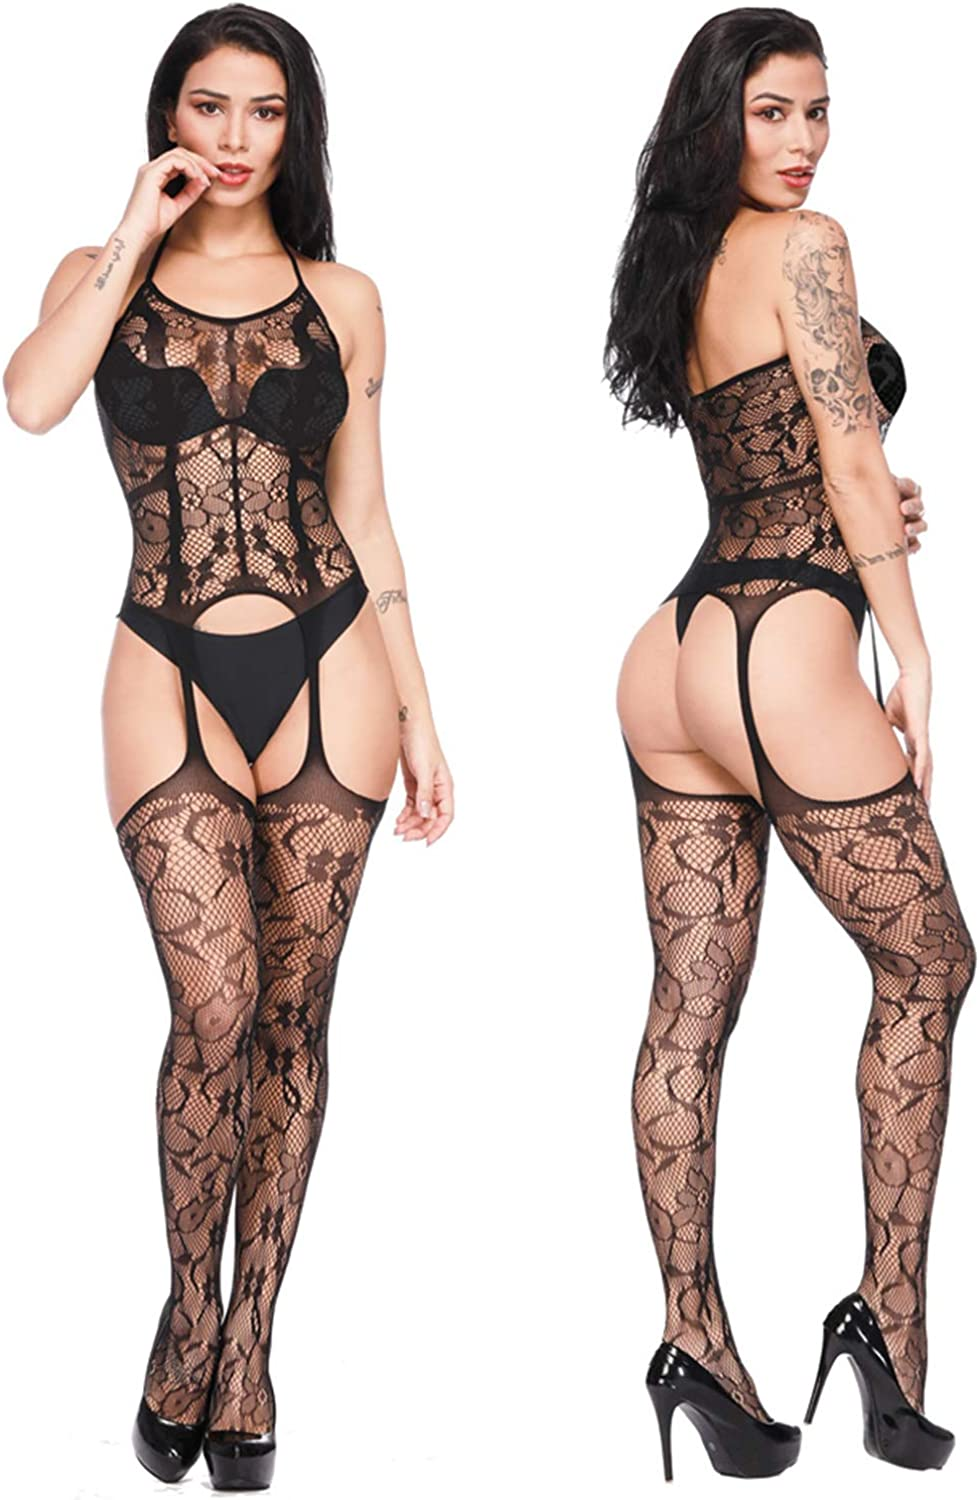 FEPITO 6 Set Women Stockings Lingerie Lace Fishnet Bodysuits for Lingerie Party Date Wearing